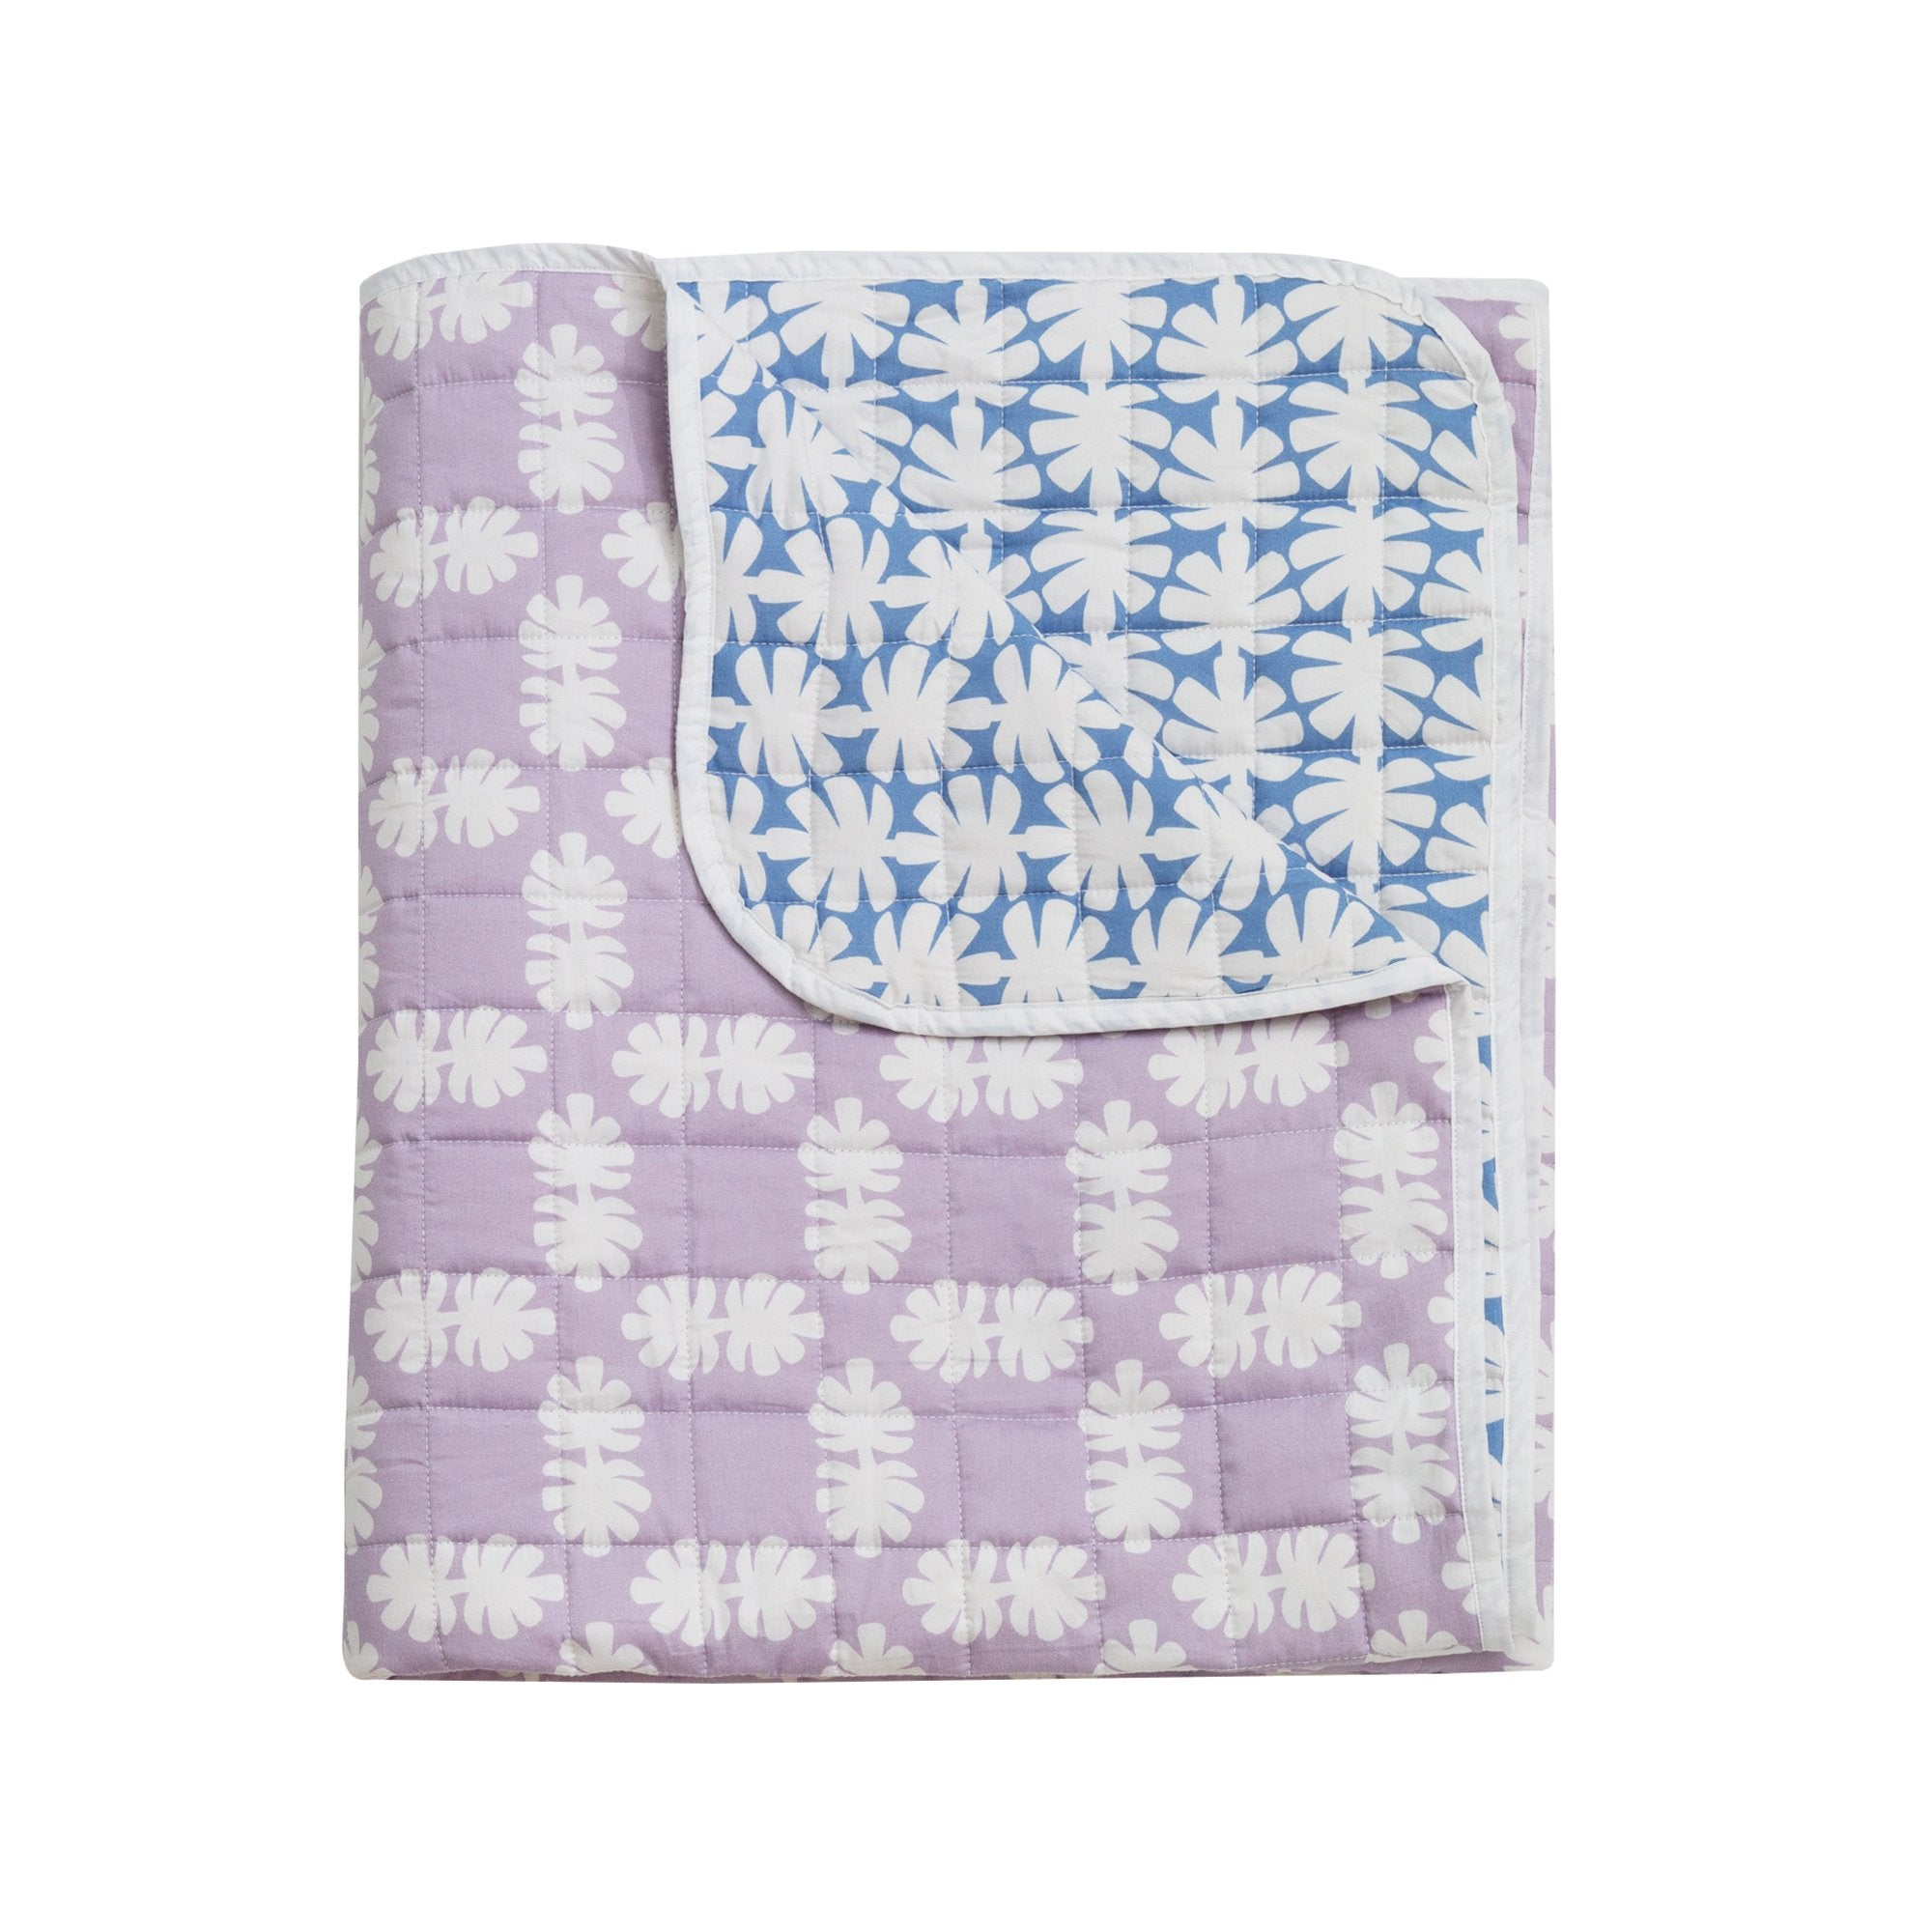 Kikau's Lilac and Blue Coconut Palm Quilted Bedspread on white background